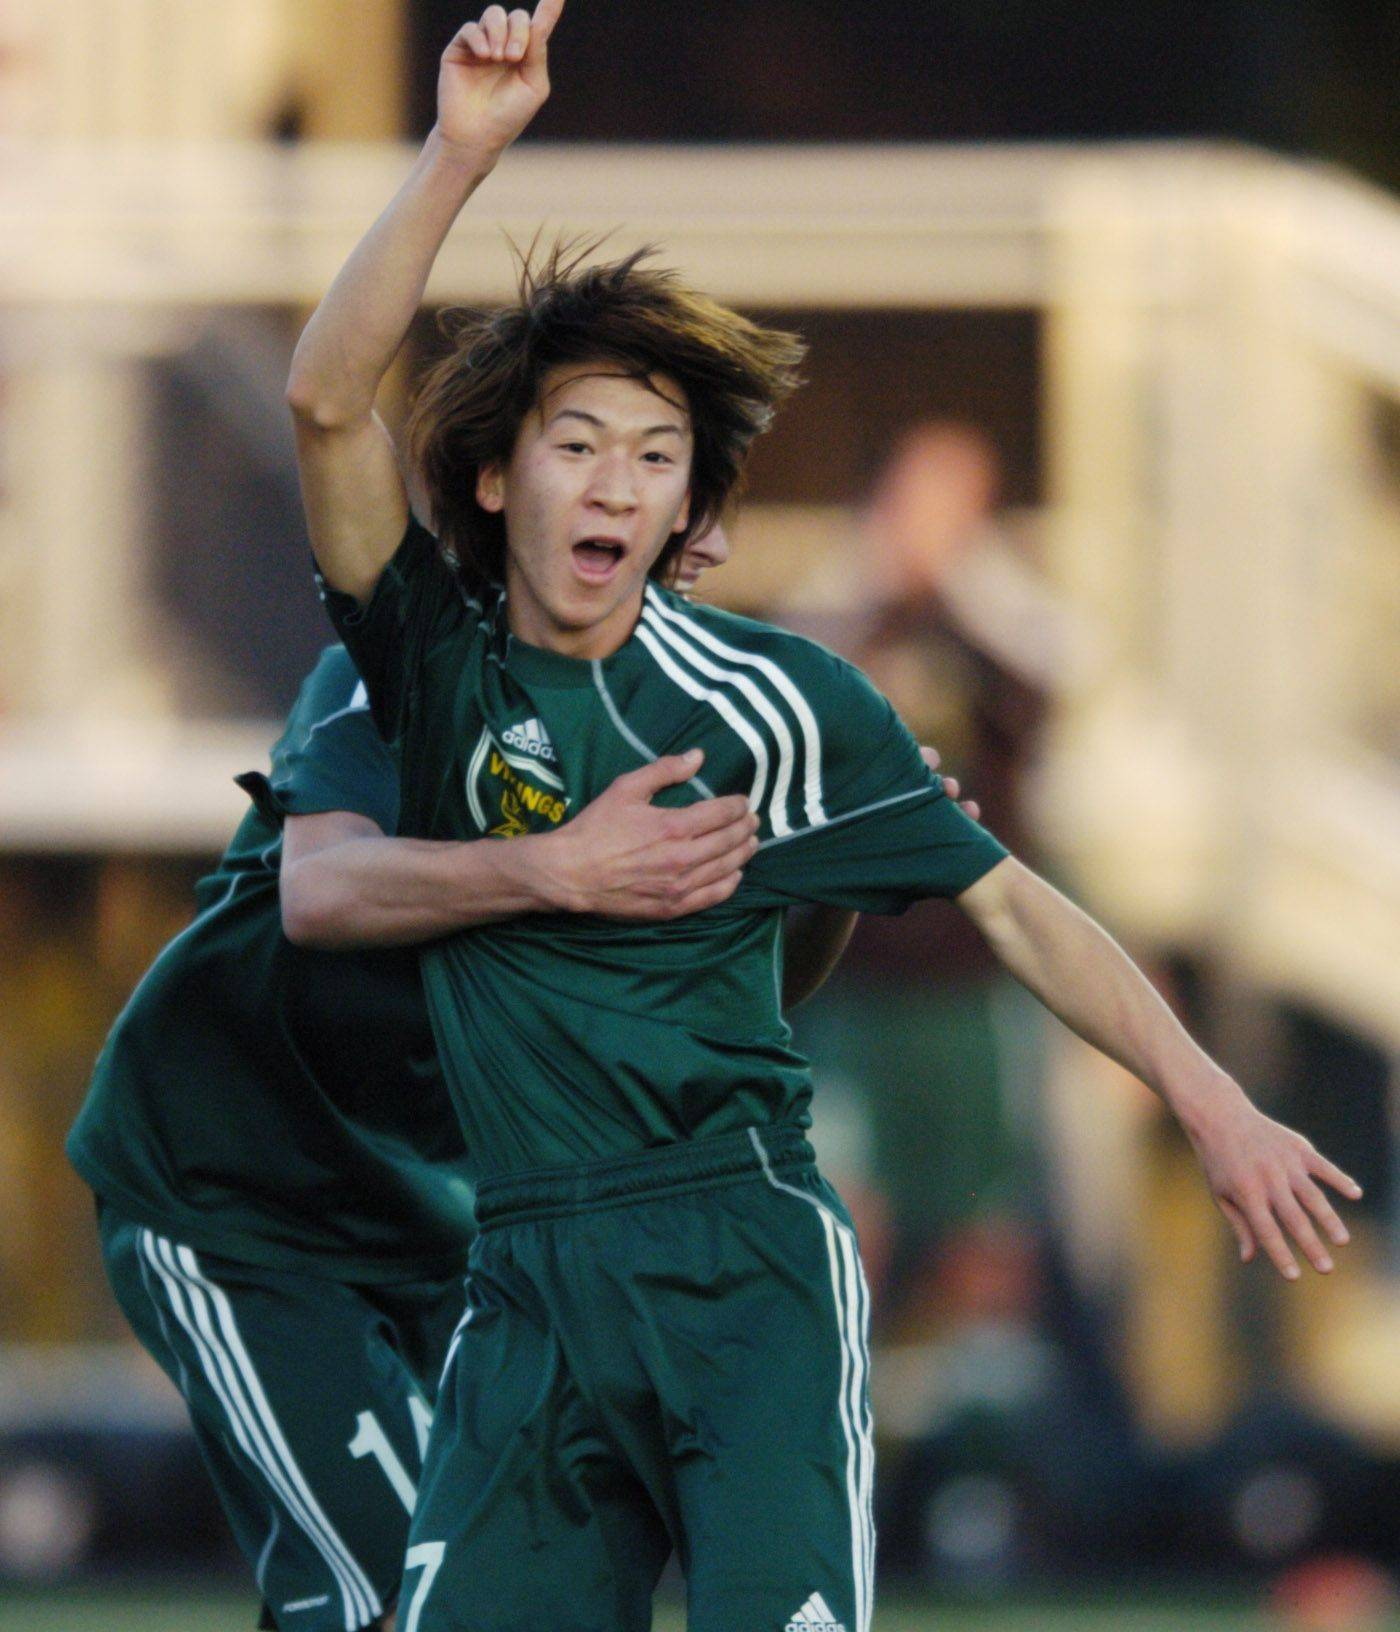 JOE LEWNARD/jlewnard@dailyherald.comFremd's Yusuke Kanada ccelebrates his goal against New Trier during Tuesday's boys soccer Supersectional game at Maine South.